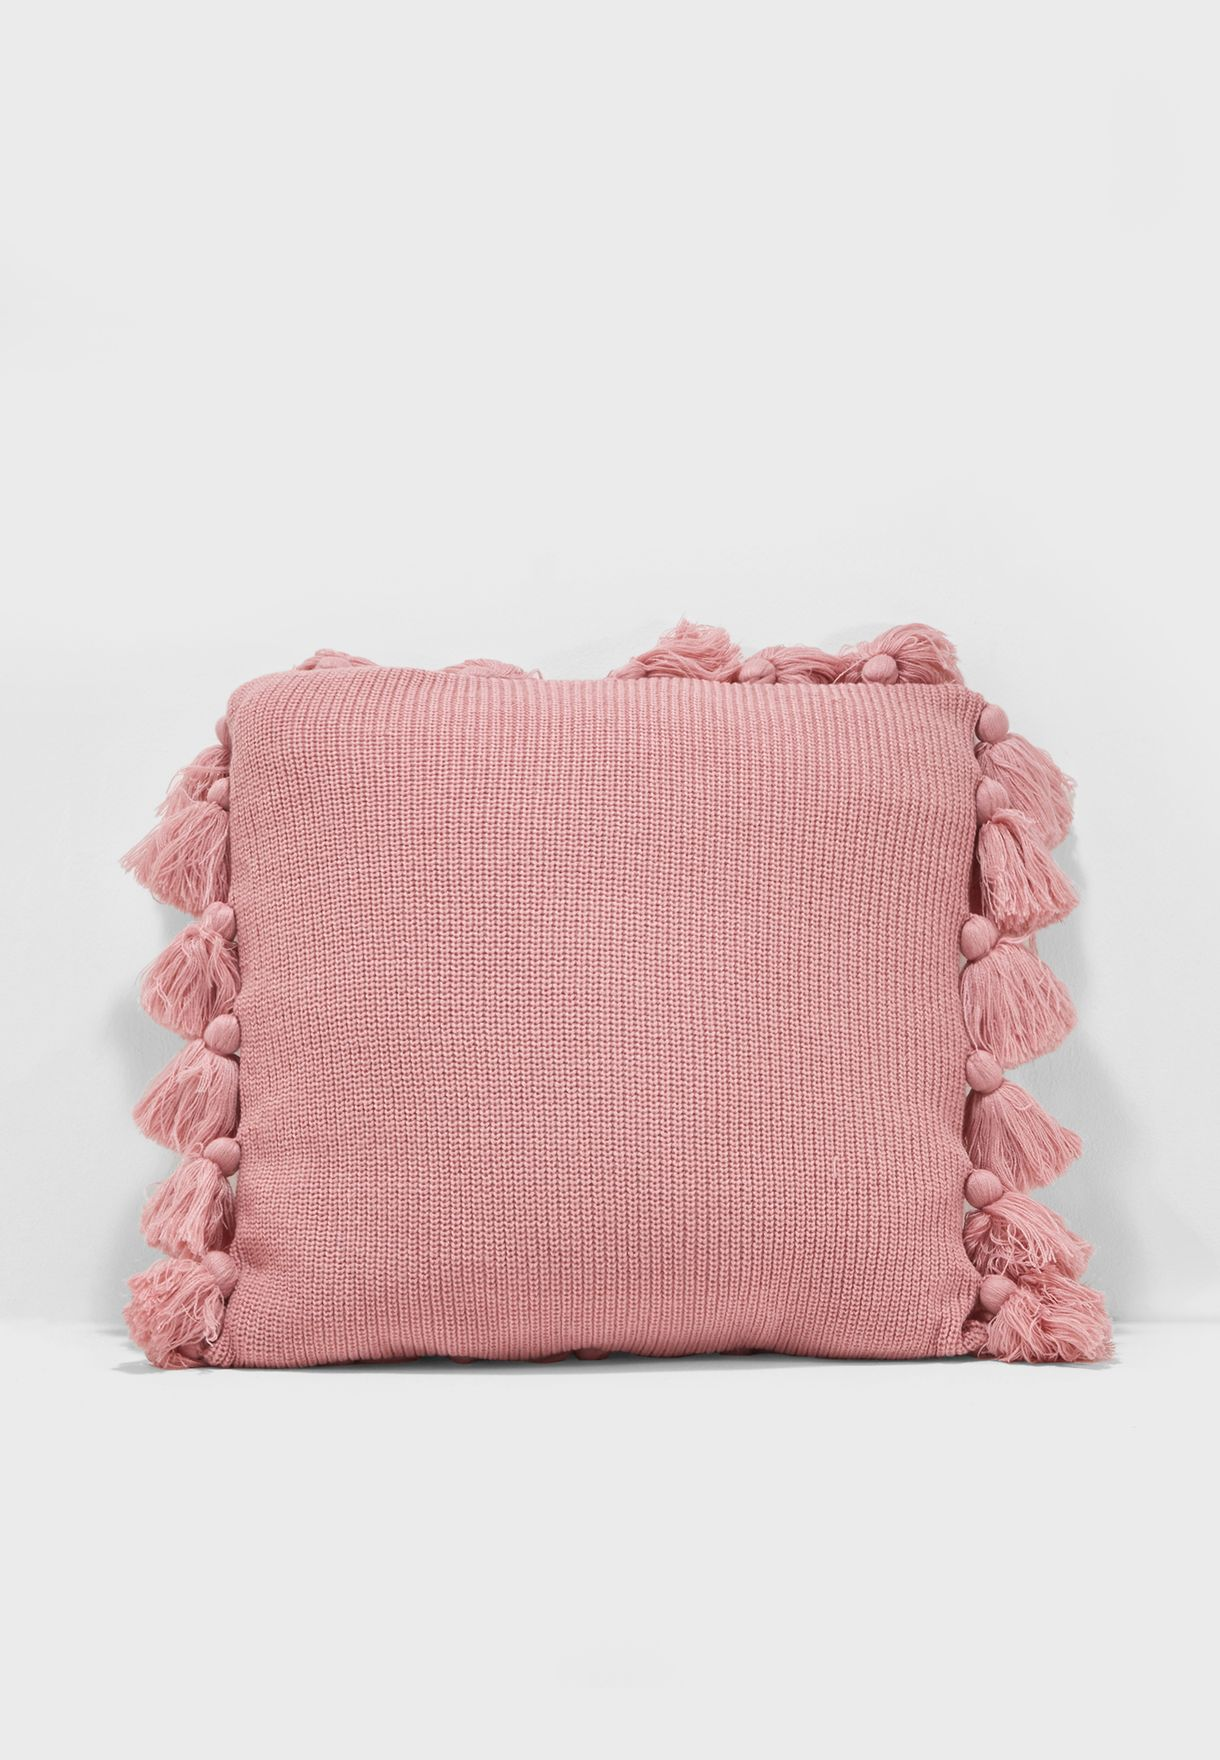 Knitted Tassle Cushion 45x45cm Insert Included